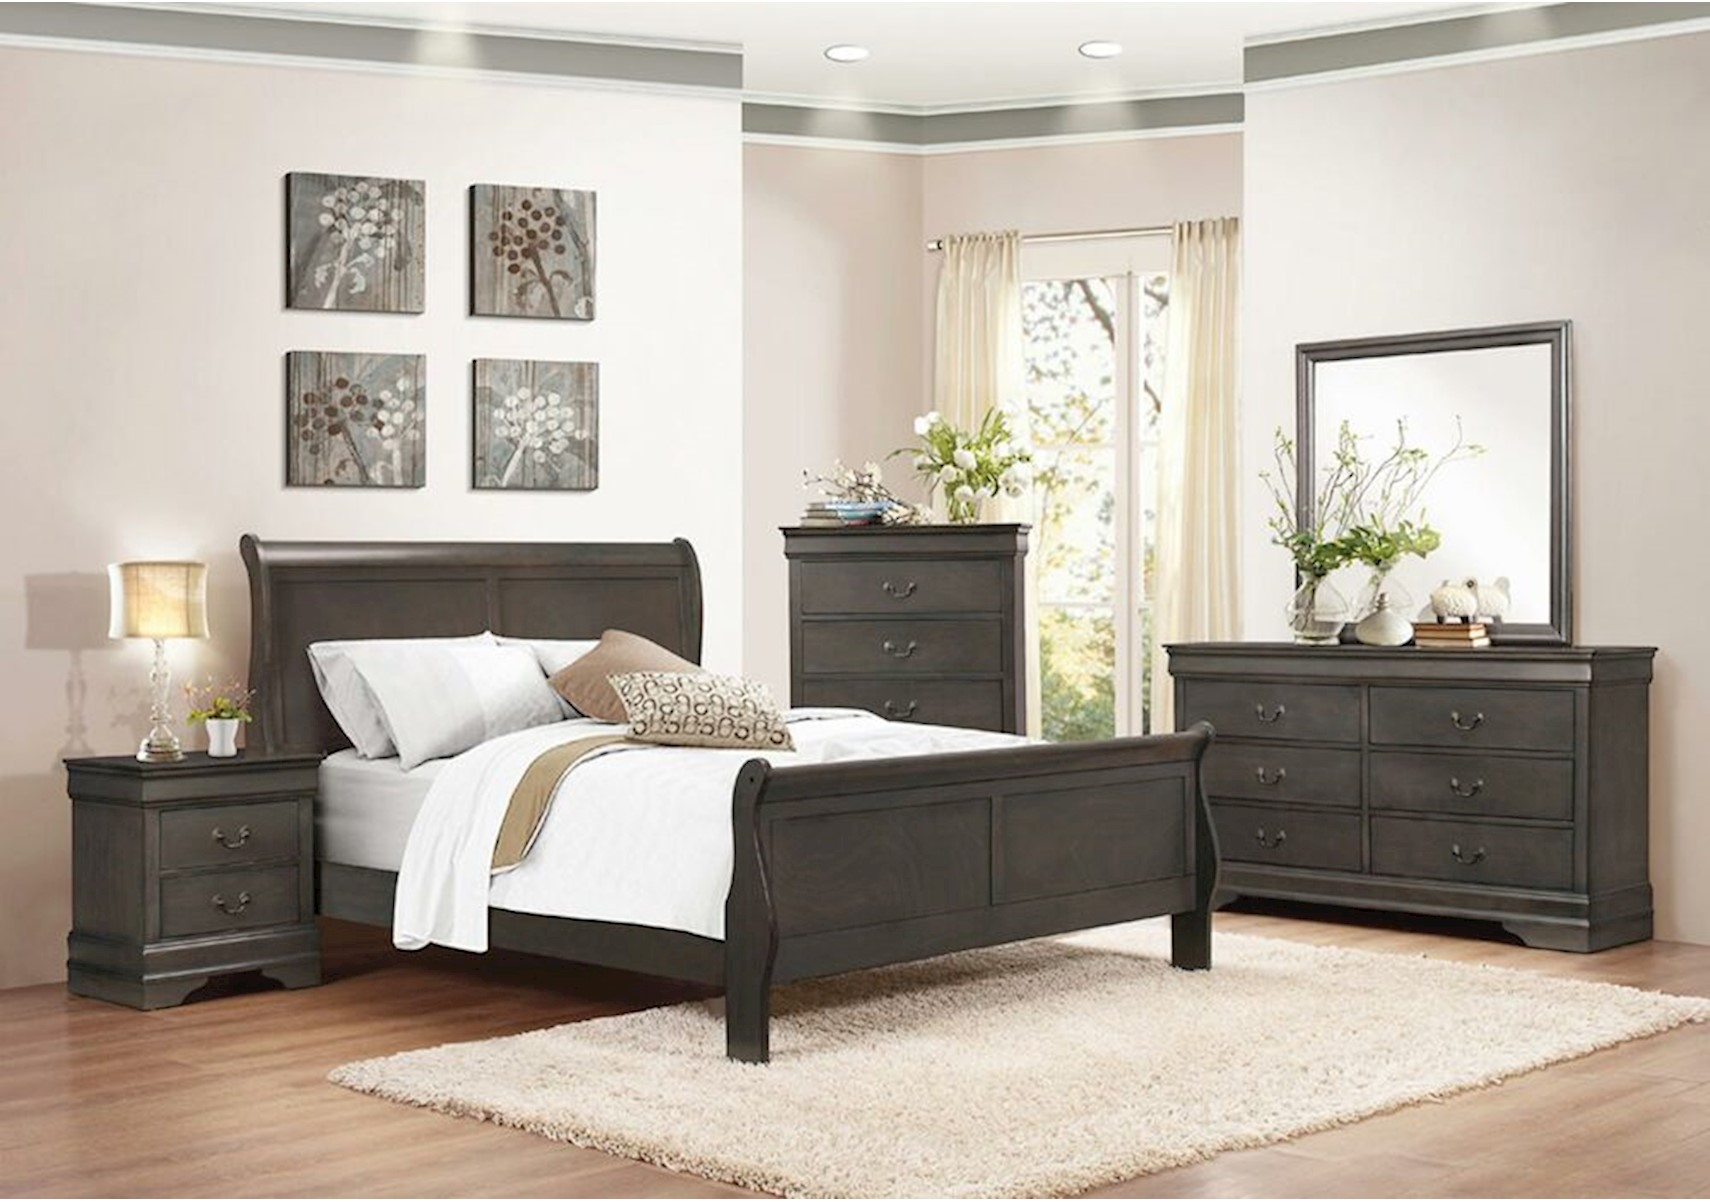 Lacks | Mayville Gray 4-Pc Full Bedroom Set